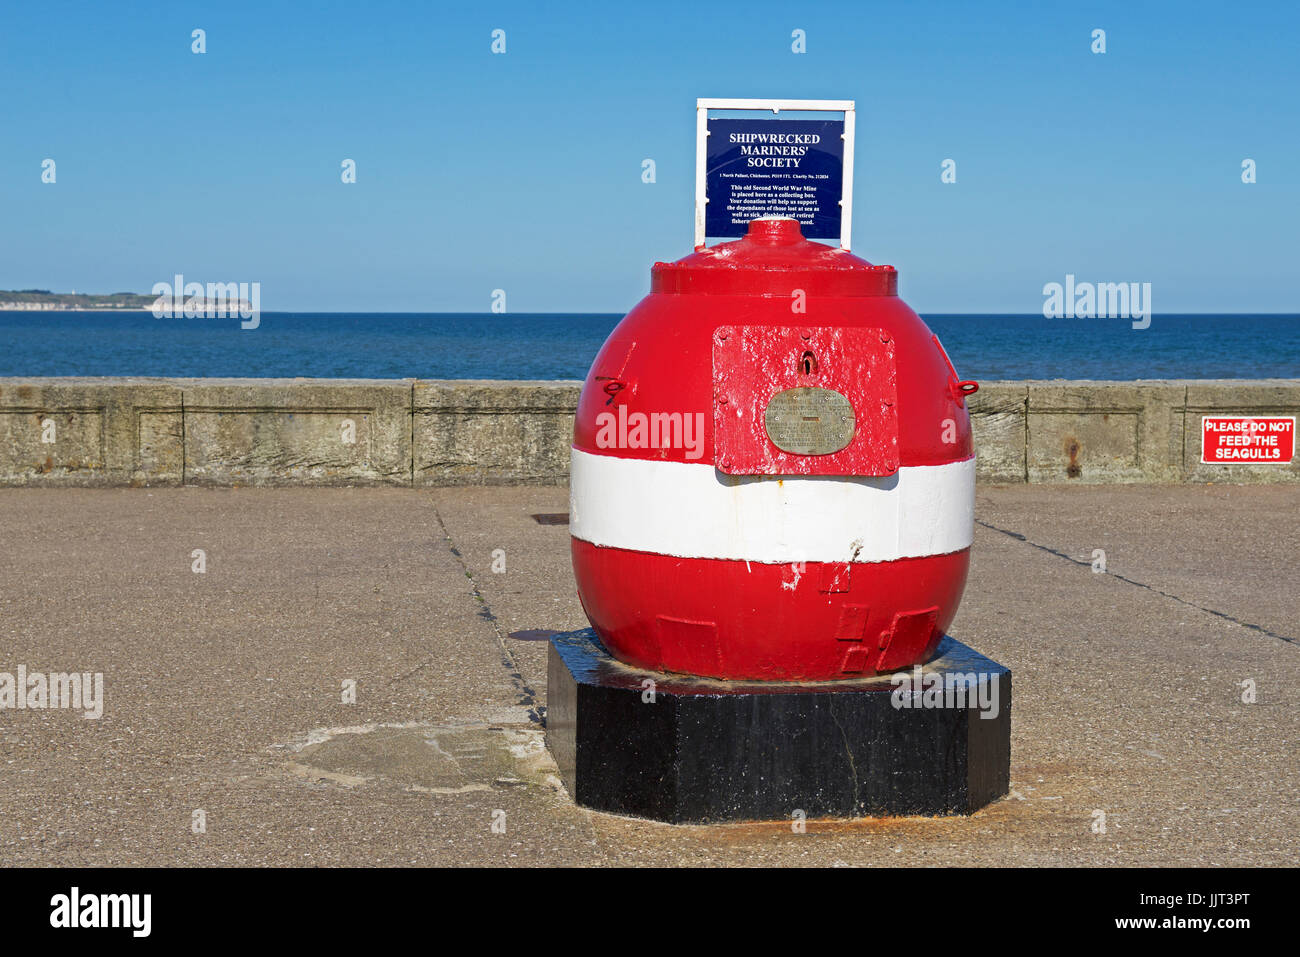 Mine used as collecting box for the Shipwrecked Mariners' Society, Bridlington, East Yorkshire, UK - Stock Image